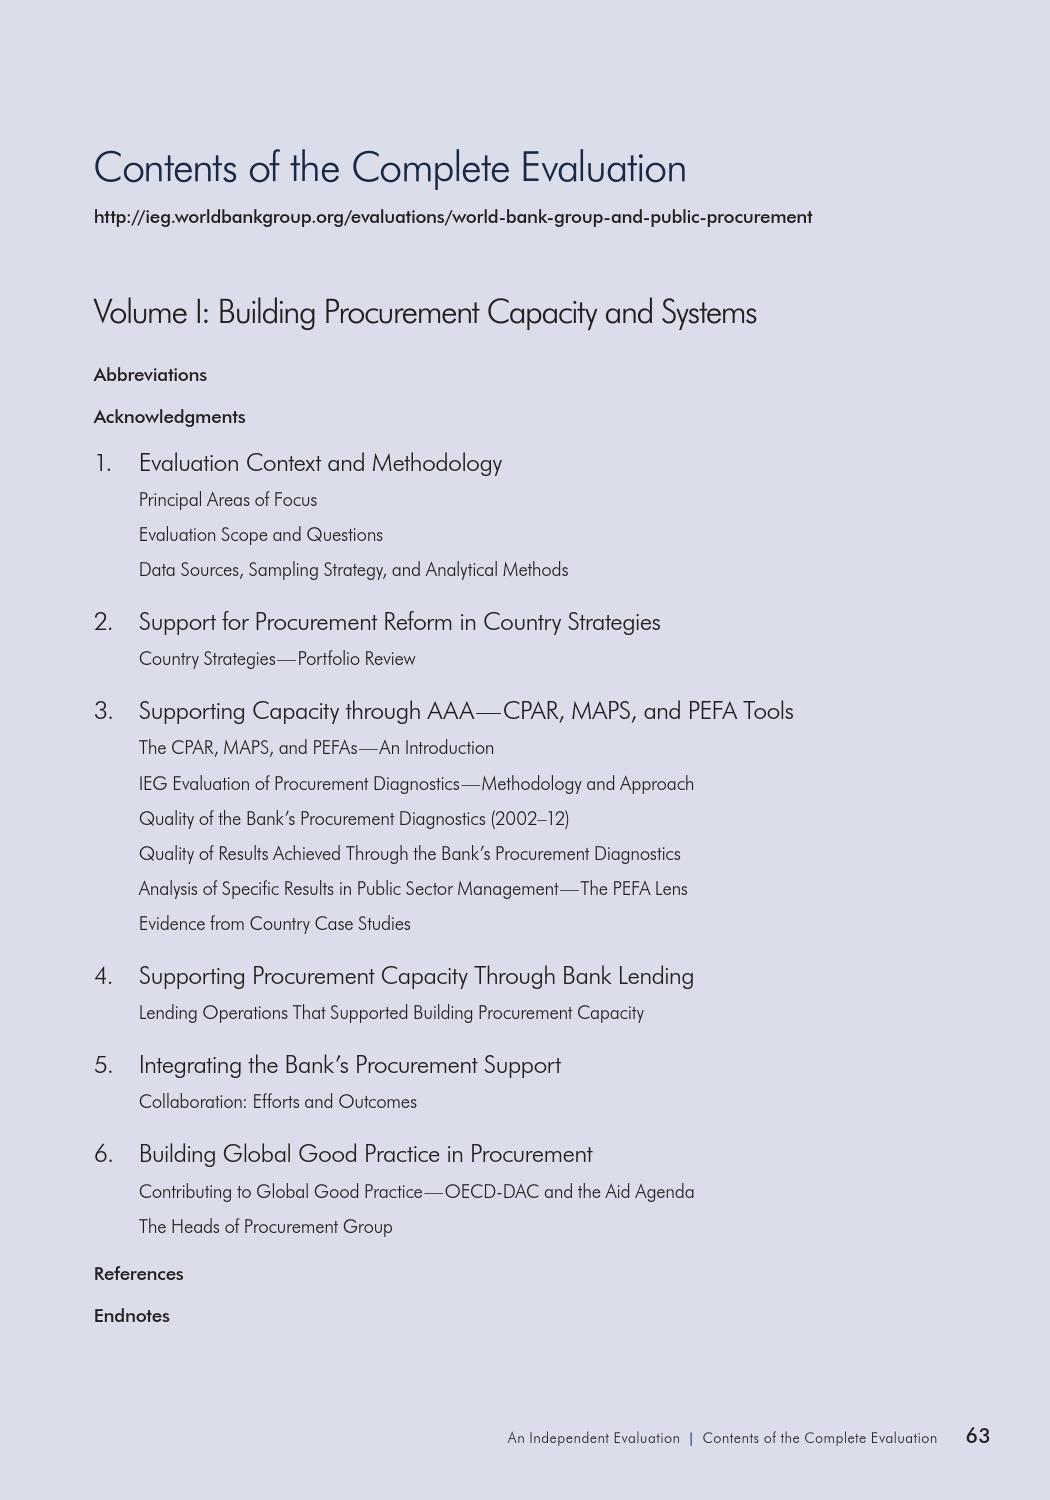 The World Bank Group and Public Procurement by World Bank